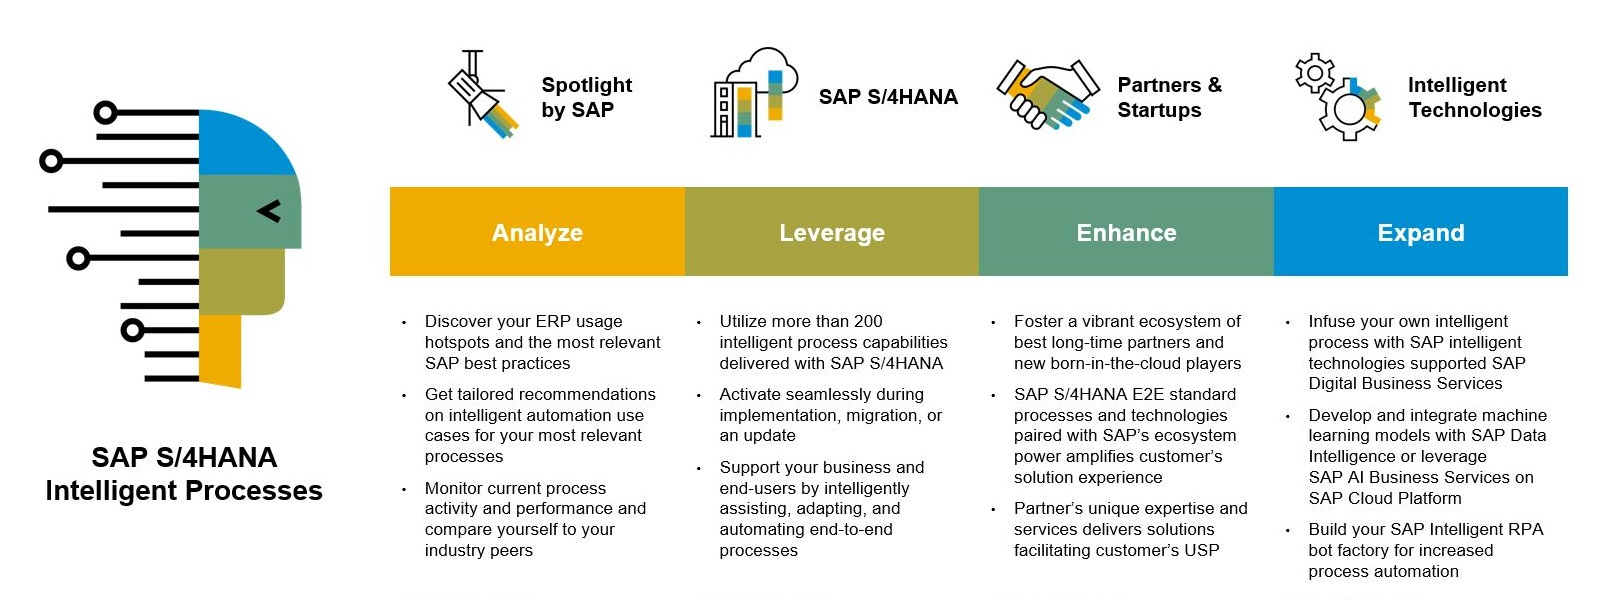 Getting%20started%20with%20intelligent%20processes%20in%20SAP%20S/4HANA